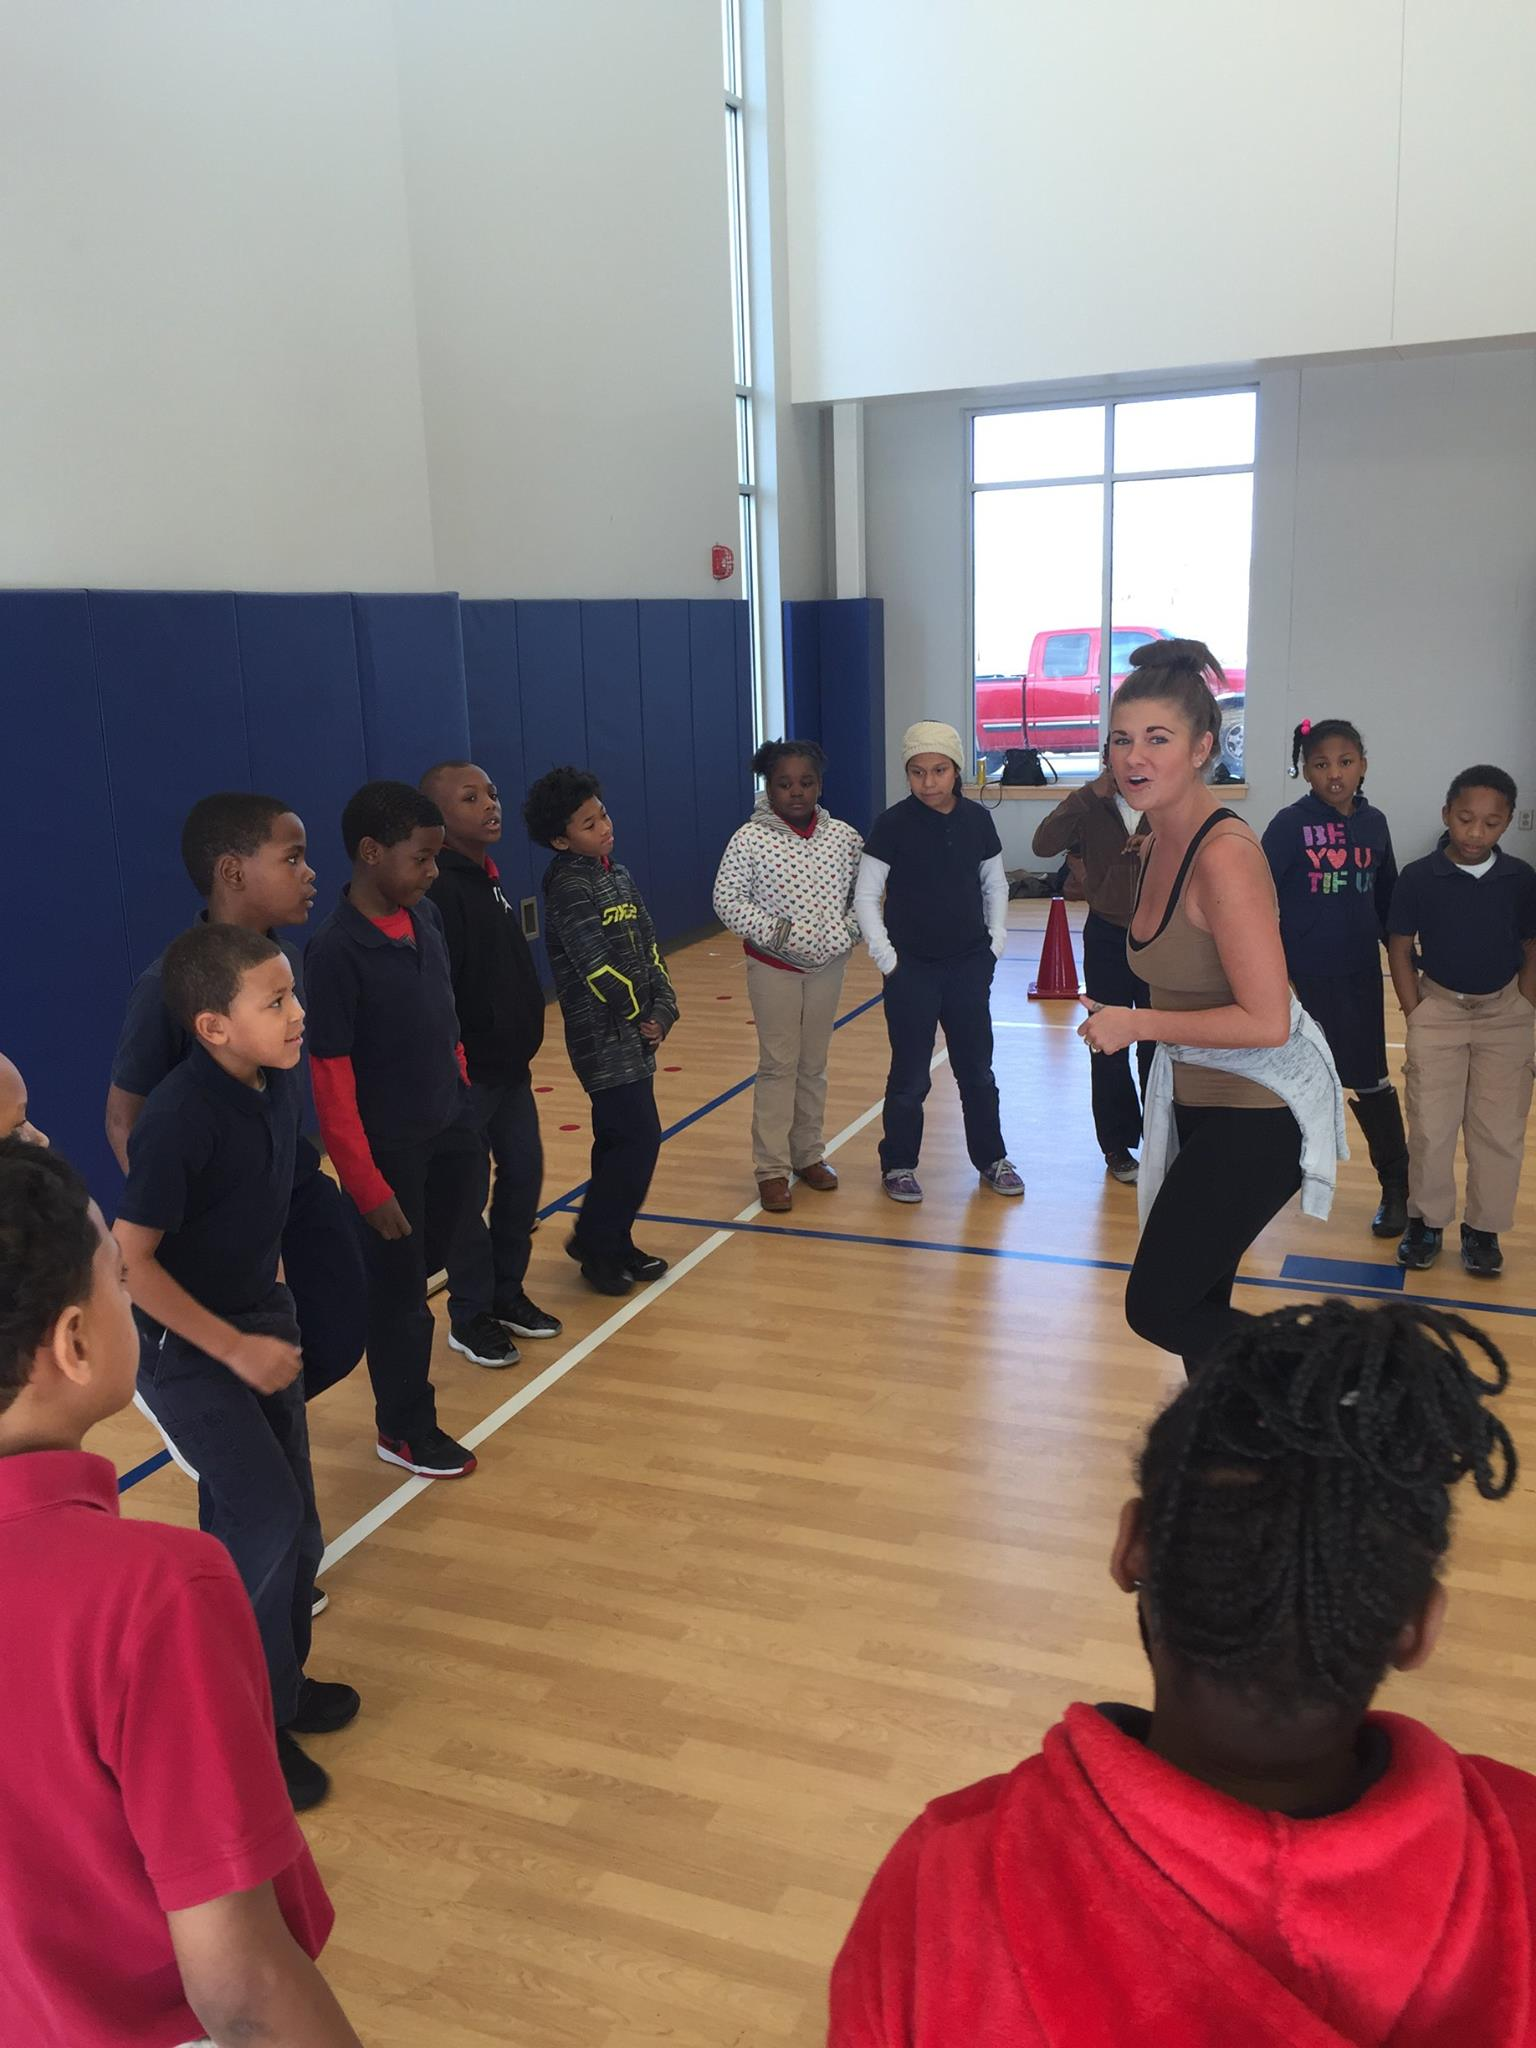 Workshop at Meadow Park Elementary in North Little Rock